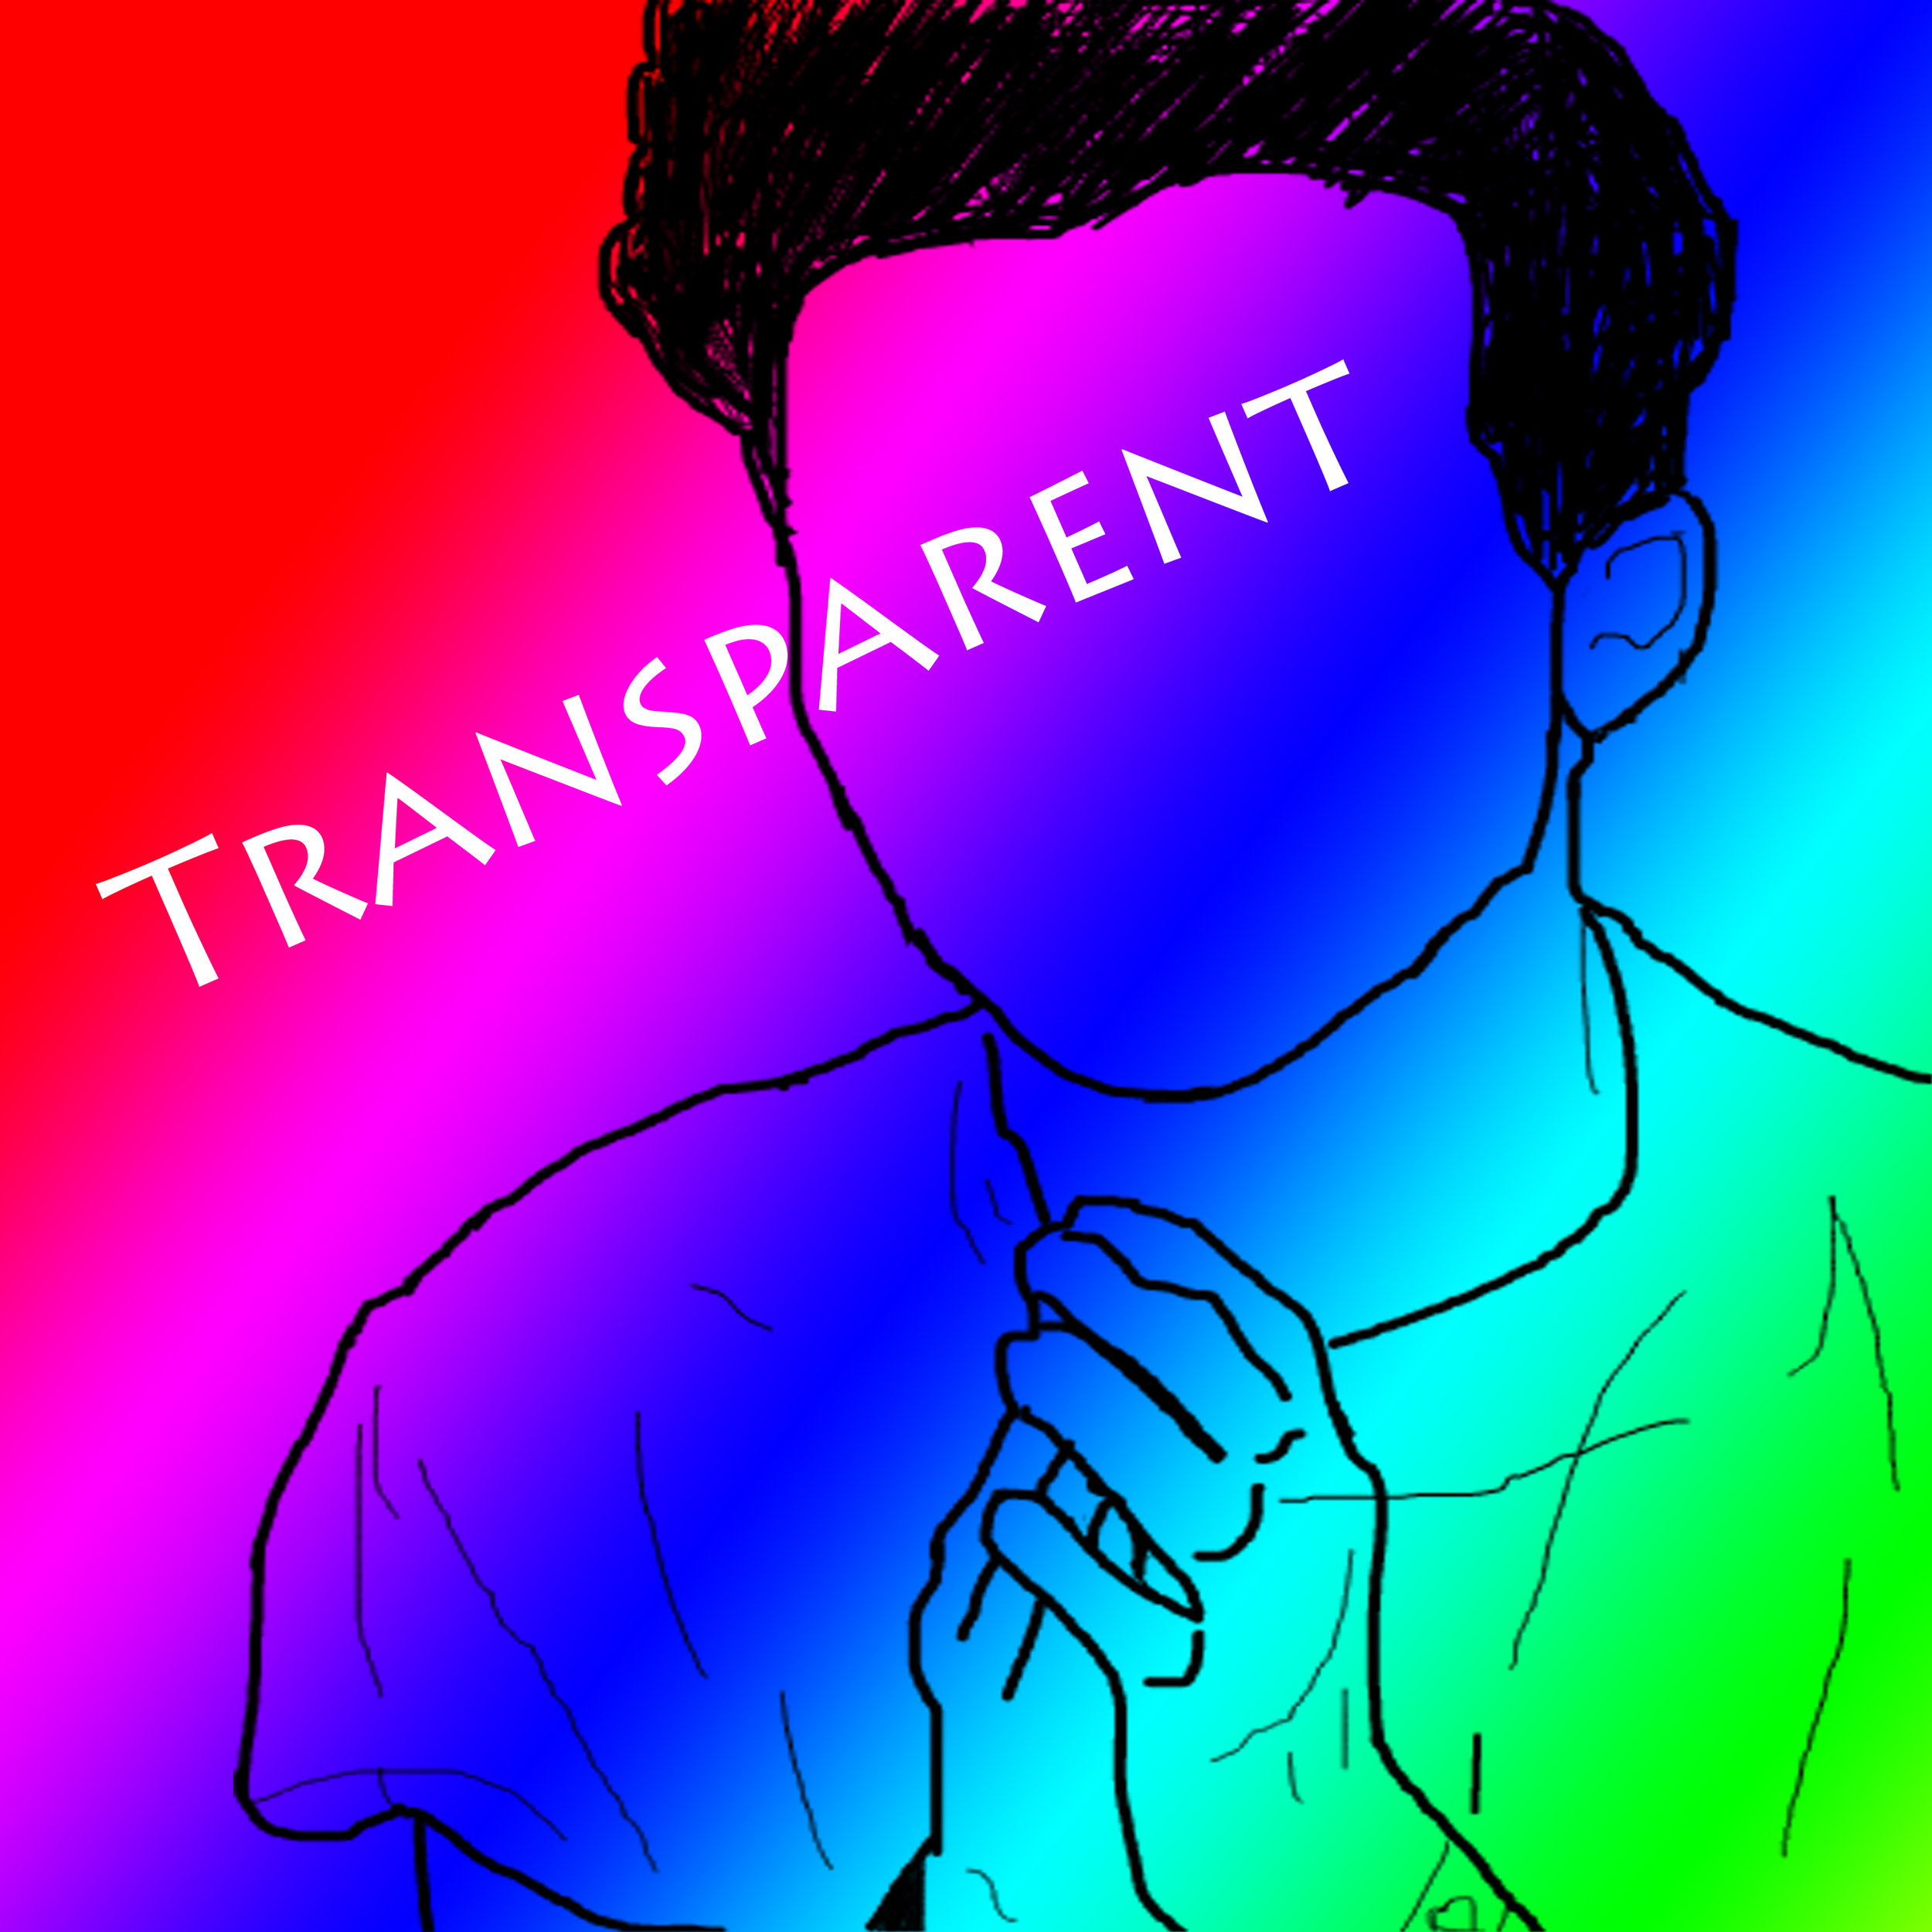 112. Transparent | John and UglyDuckling928